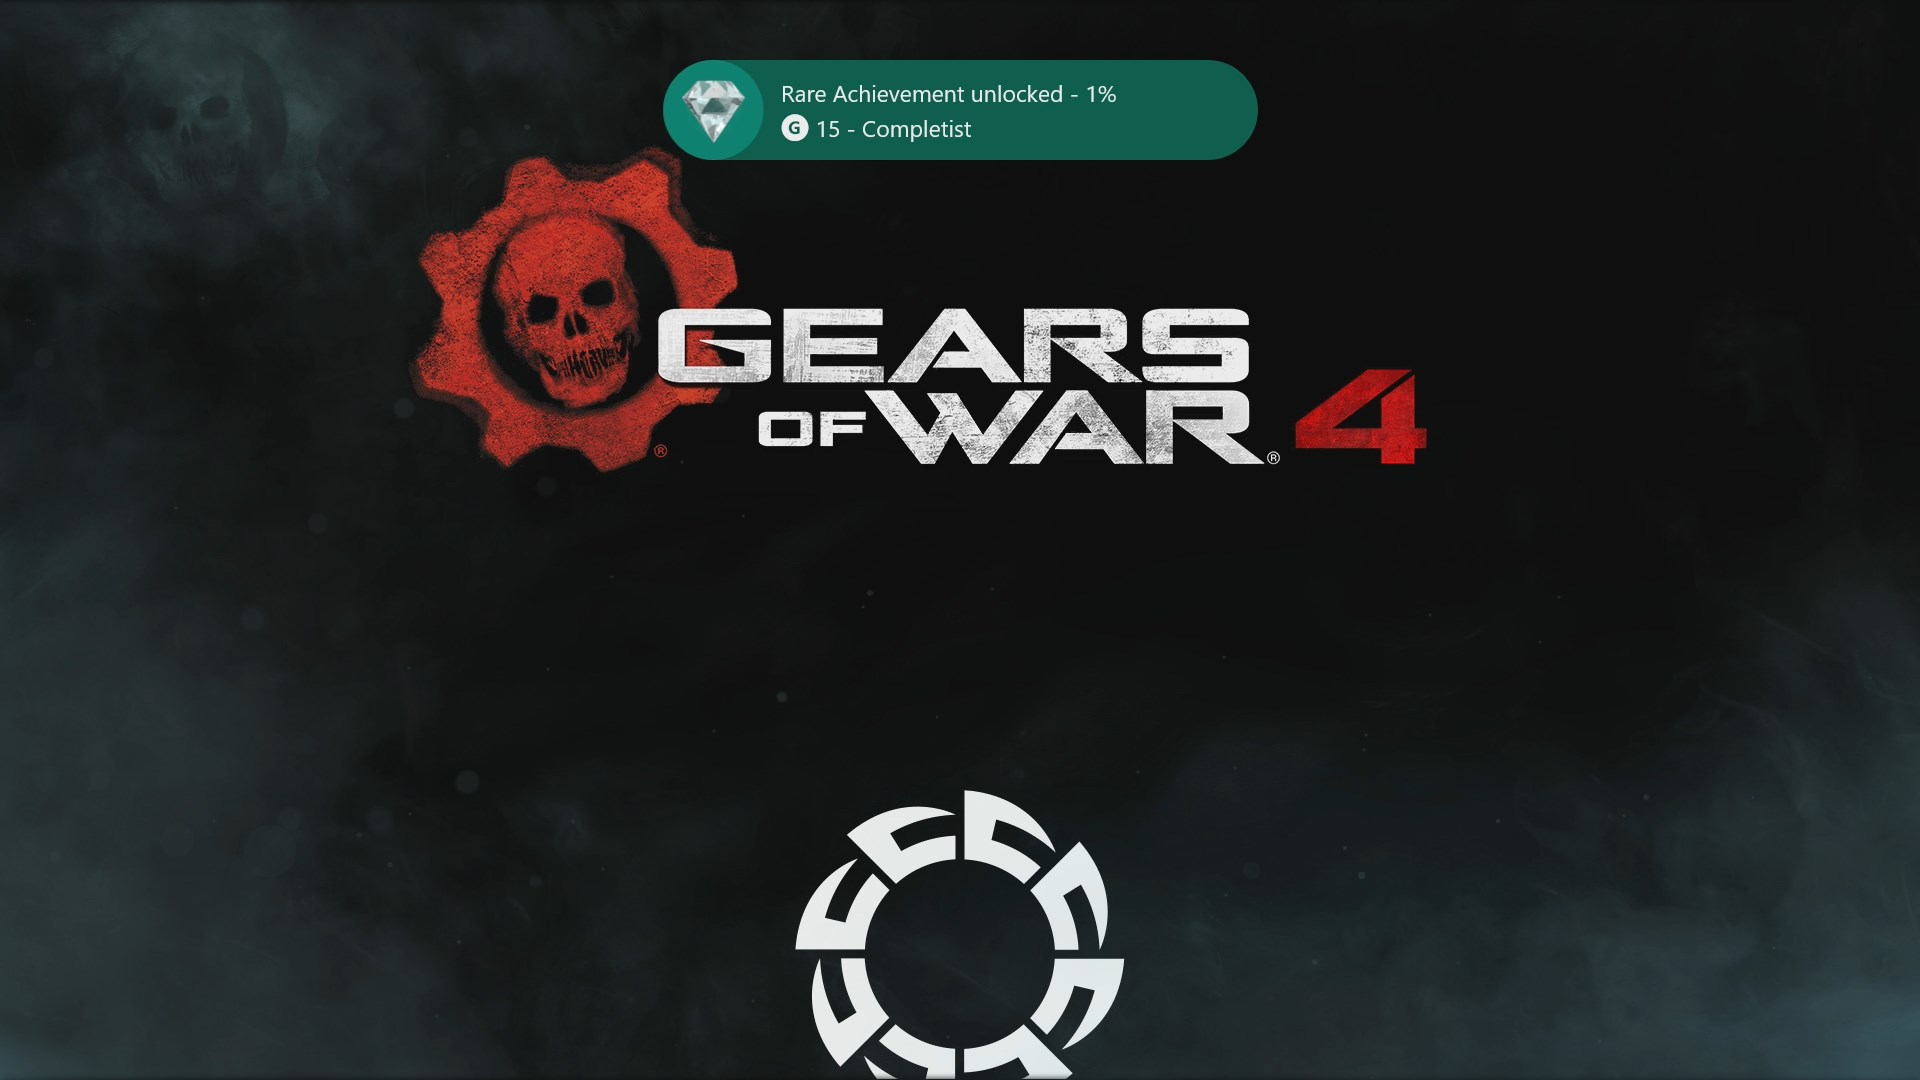 Gears of War 4 Act V Collectible #4